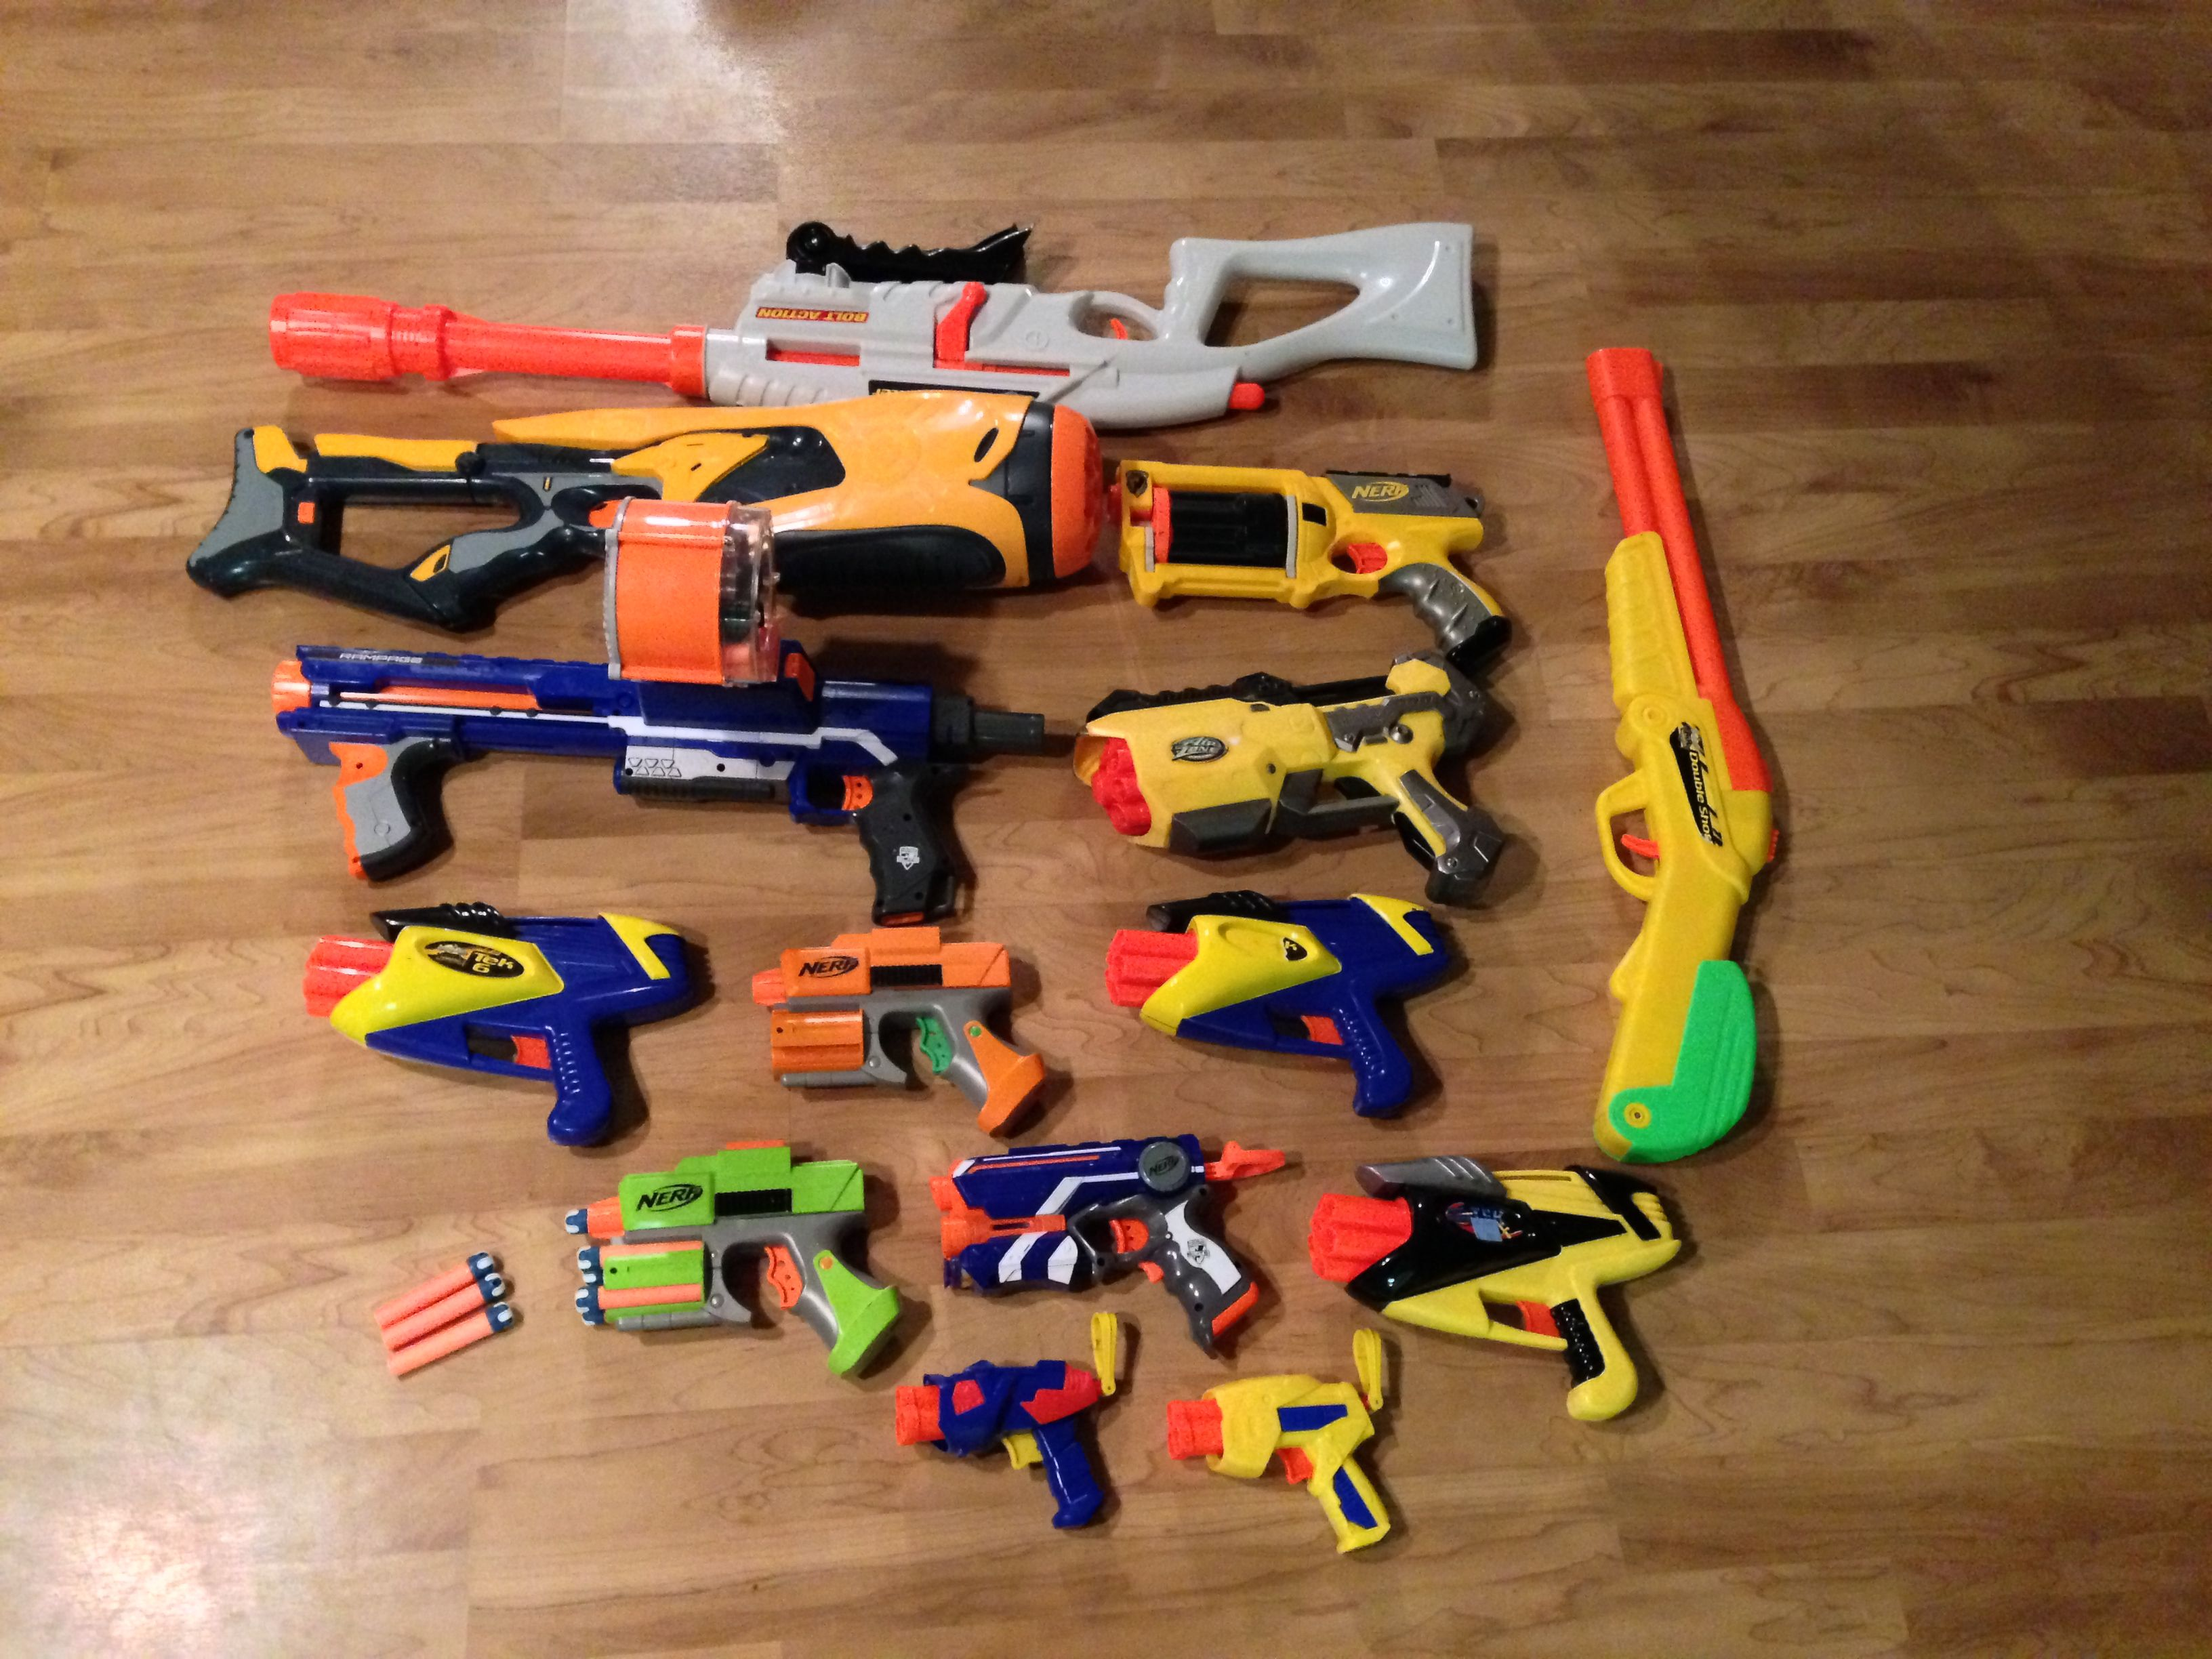 Nerf gun party - Stock up on used nerf guns at goodwill. I bought 12